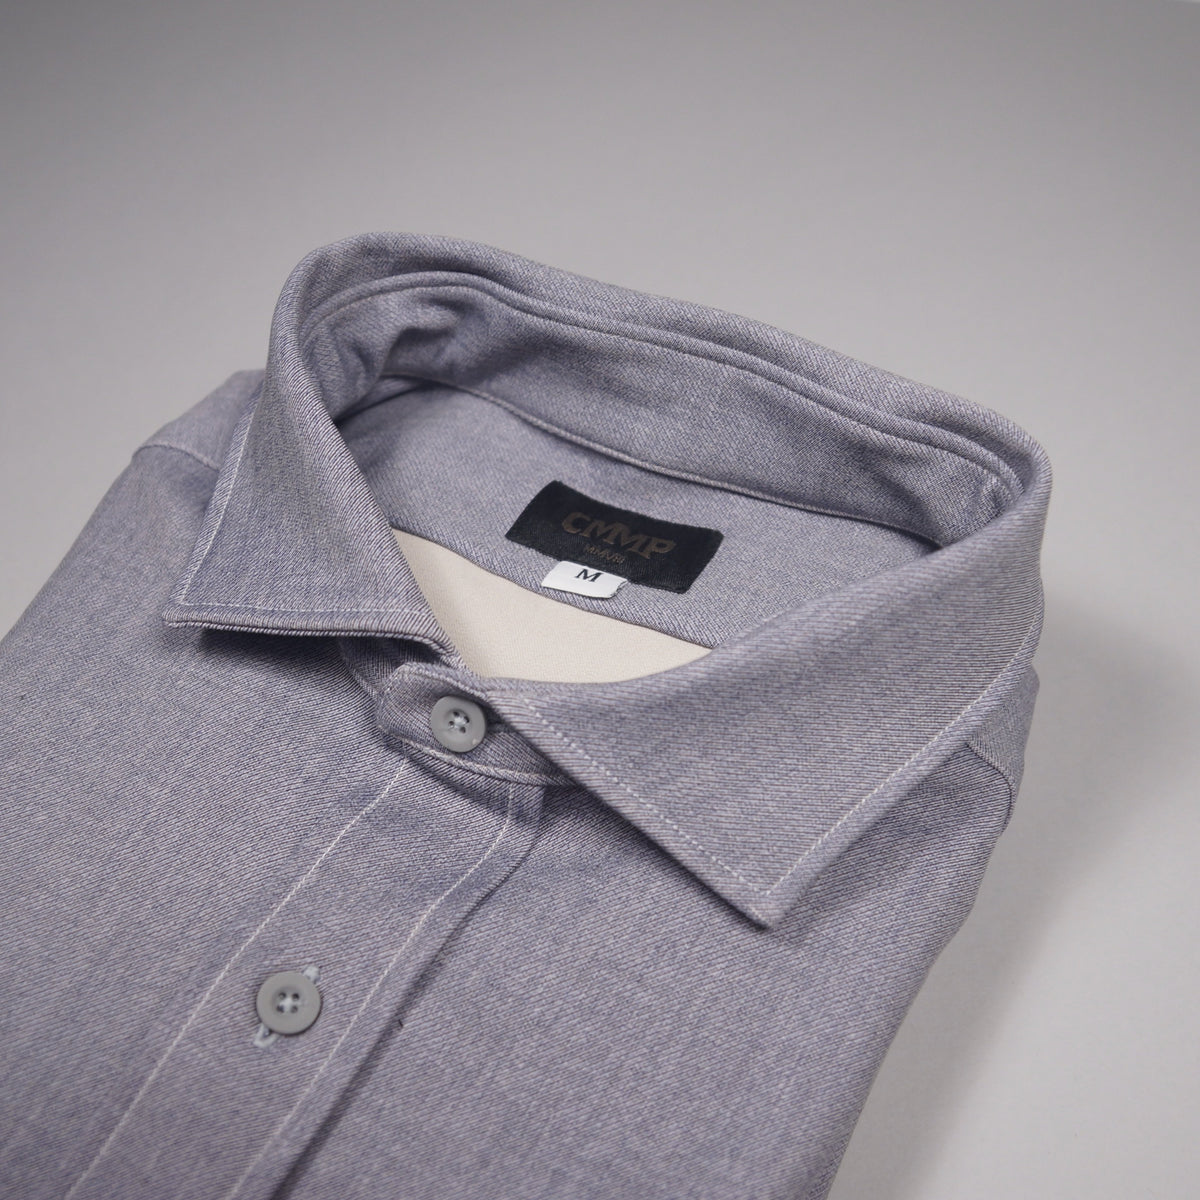 Tech Shirt Jacket - Grey